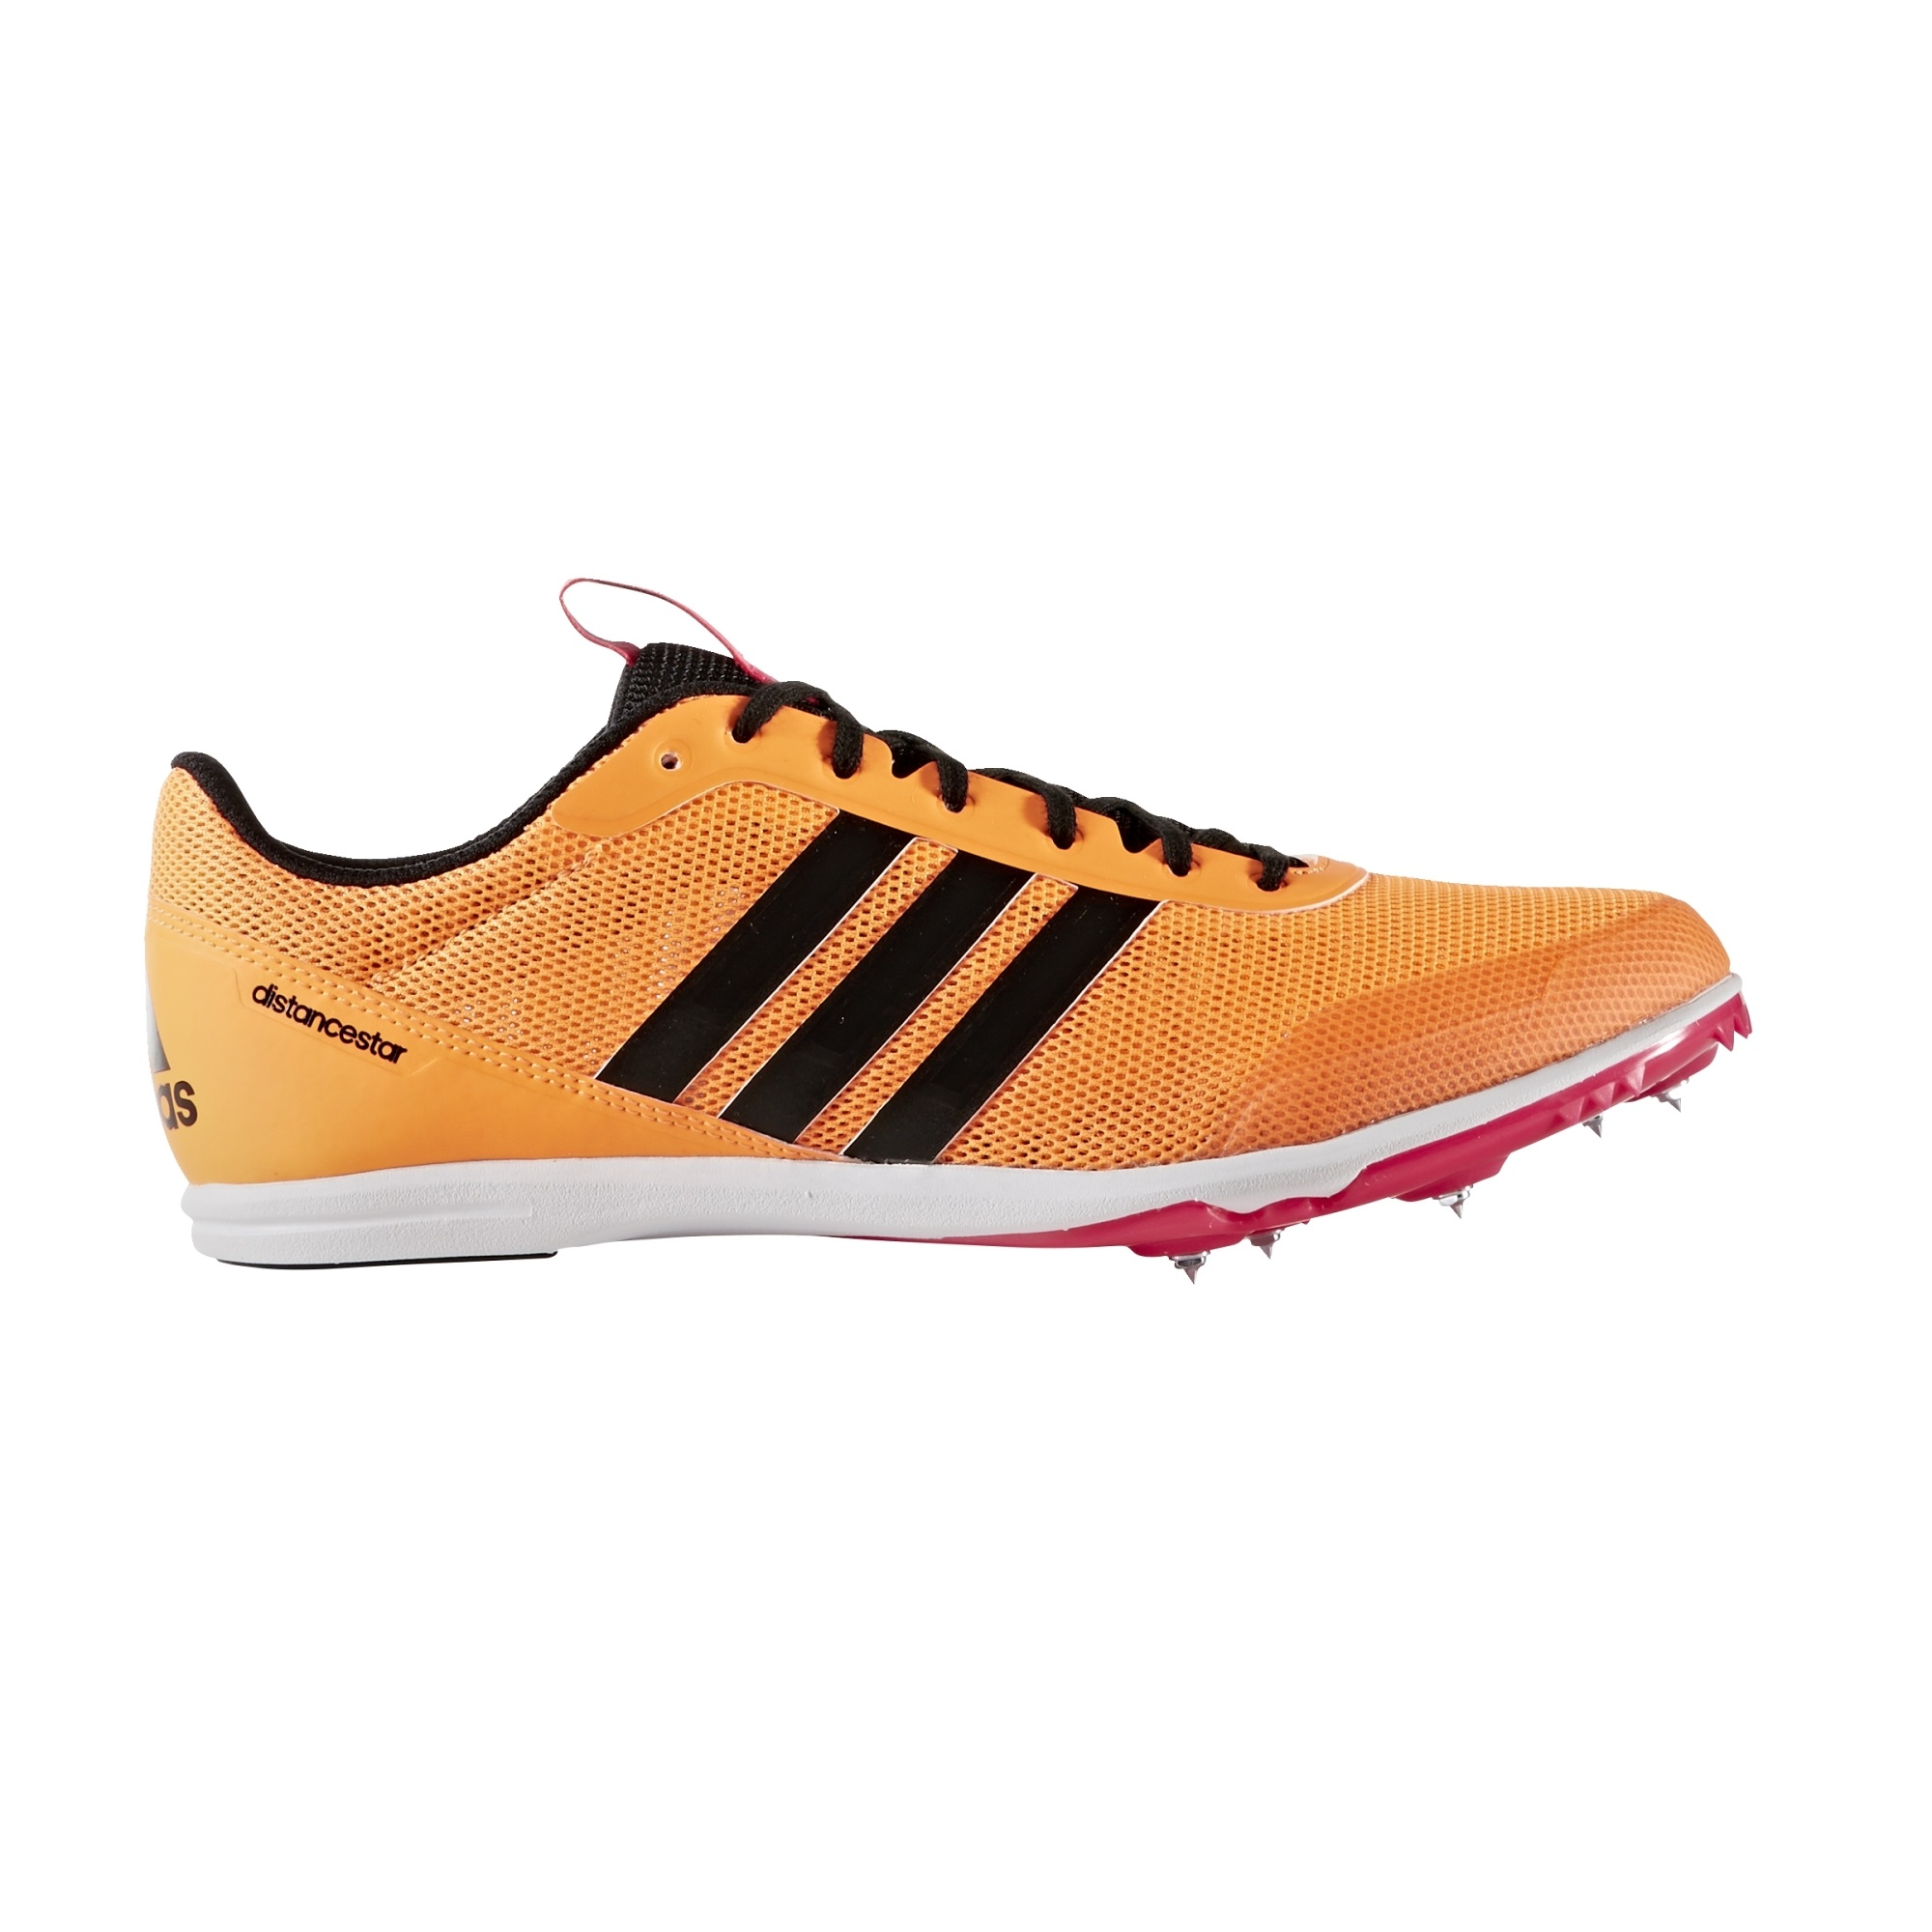 Adidas Distancestar Women's